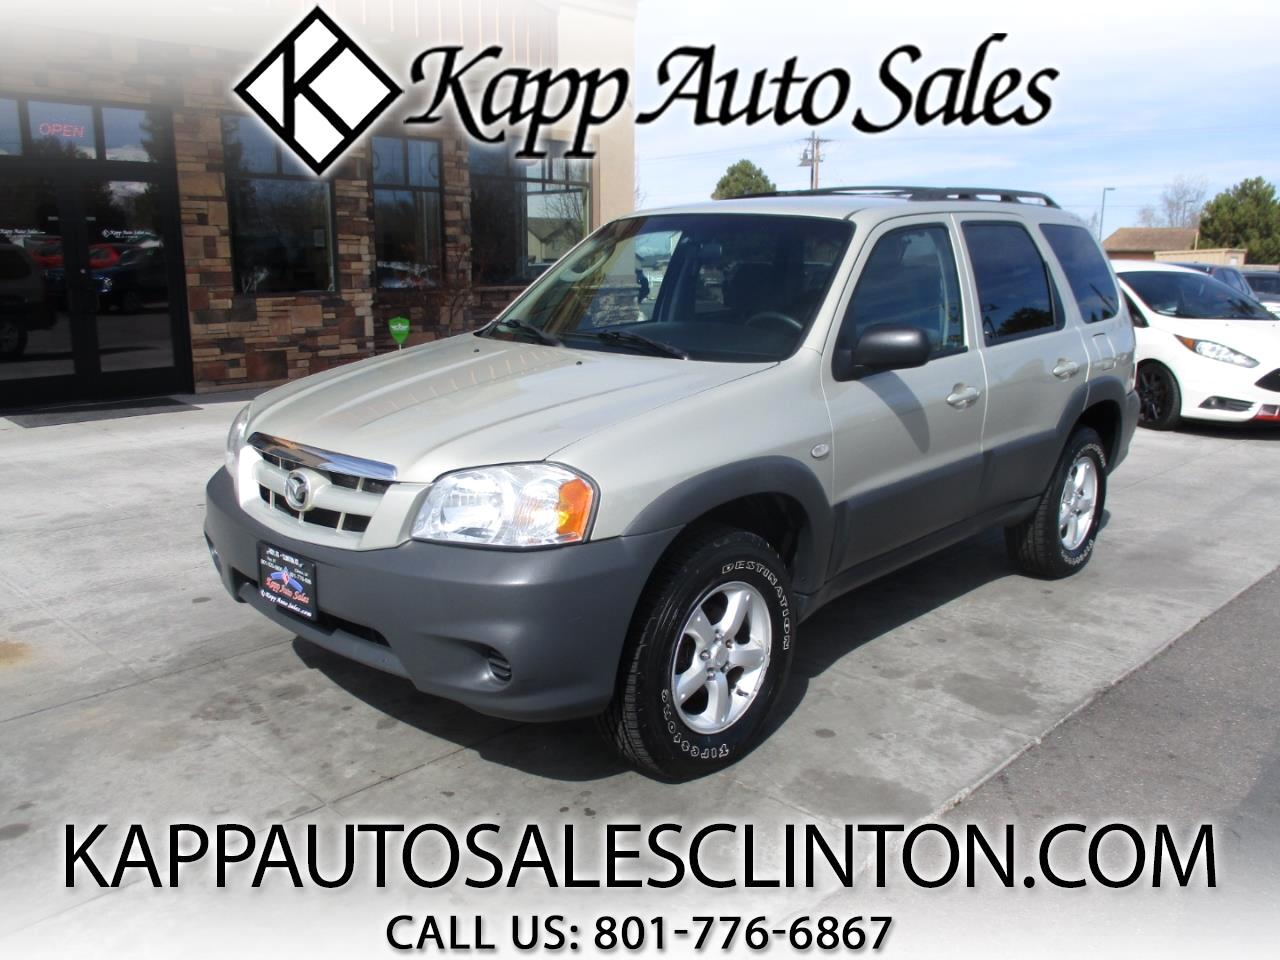 2005 Mazda Tribute 2.3L Man i